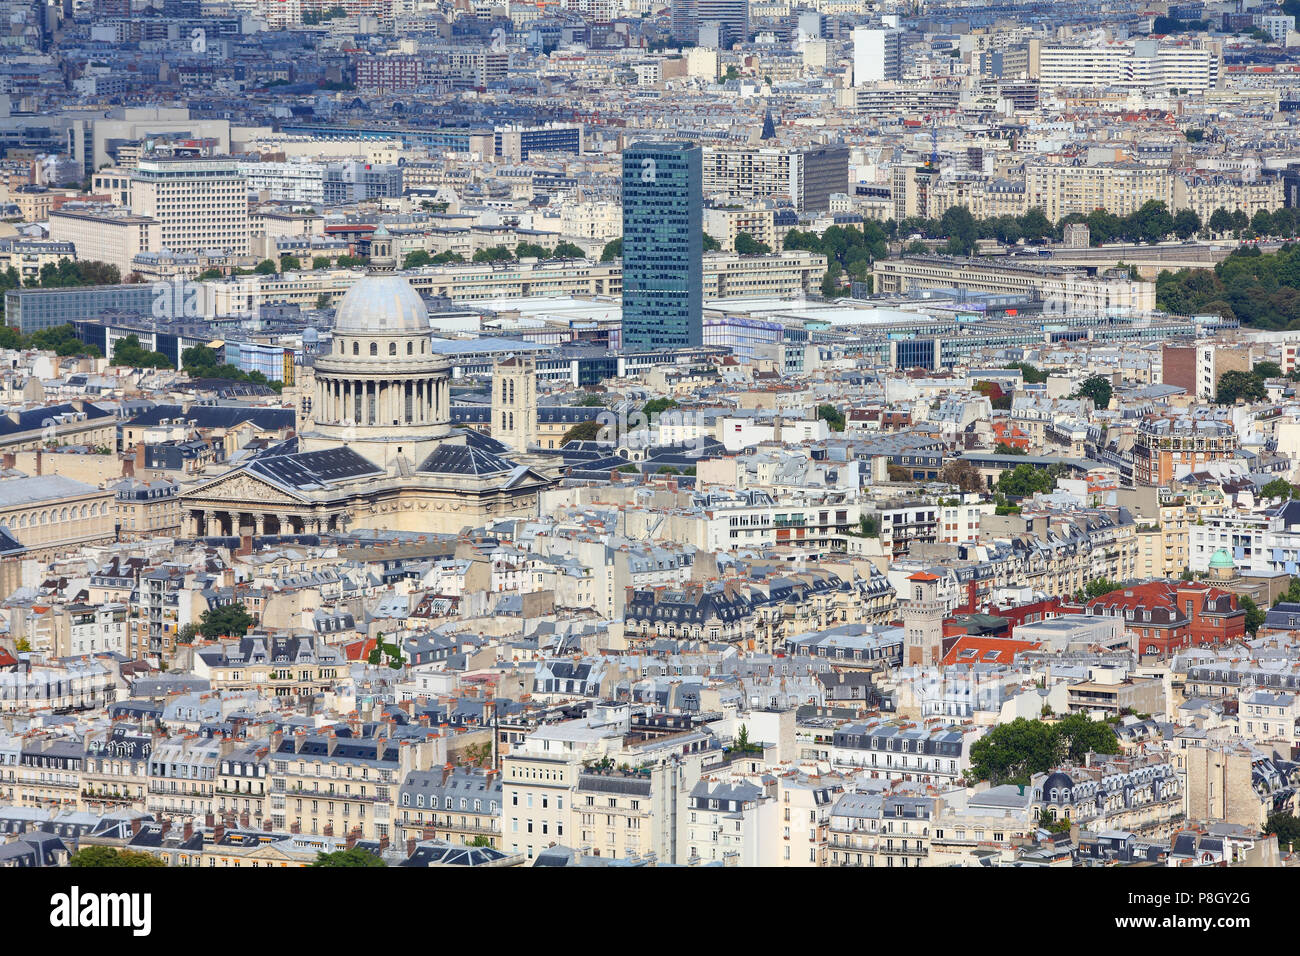 paris france aerial city view with pantheon church stock photo